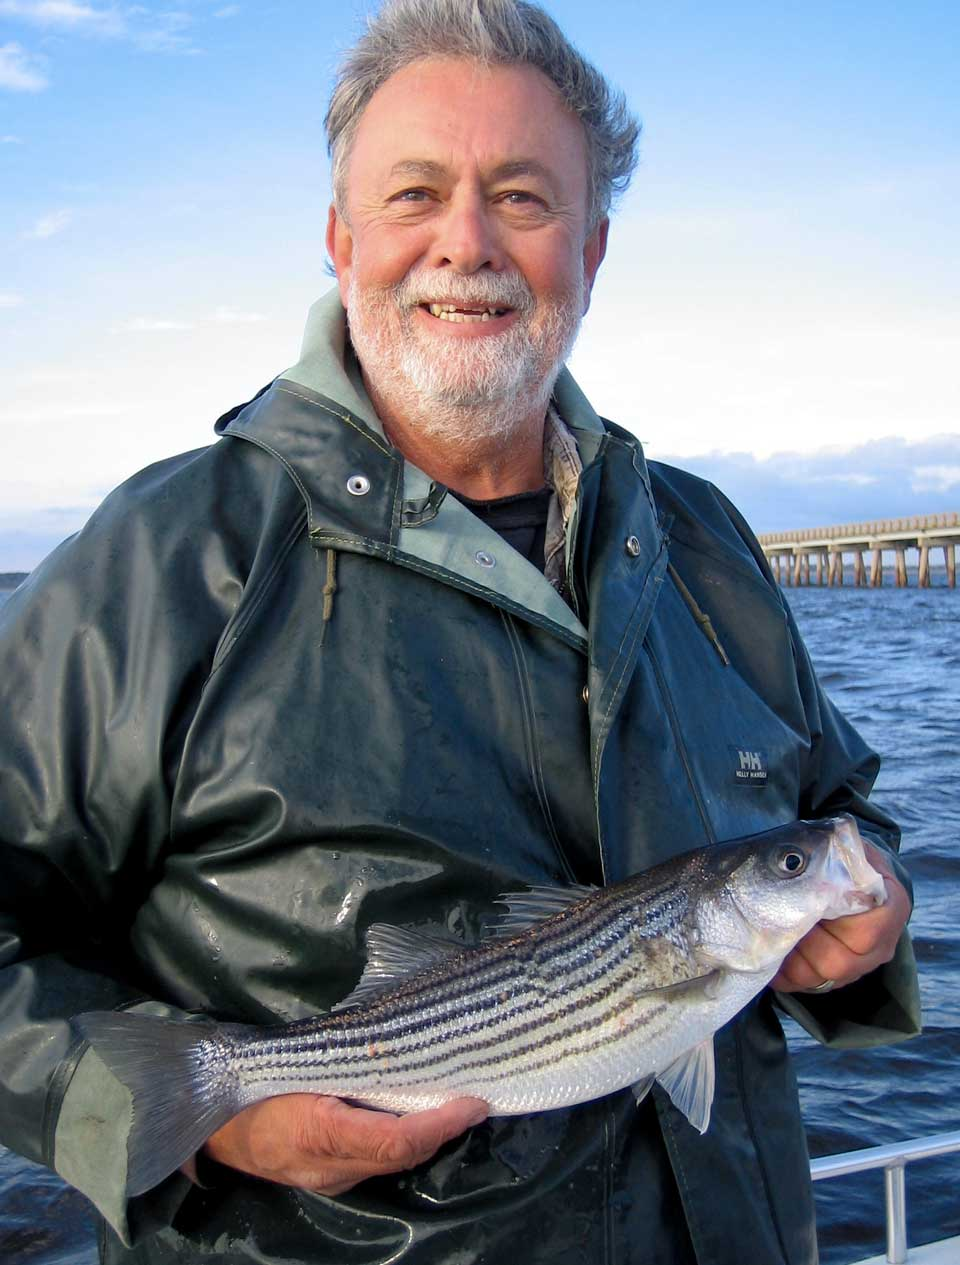 Outer banks fishing report striped bass for Striped bass fishing reports